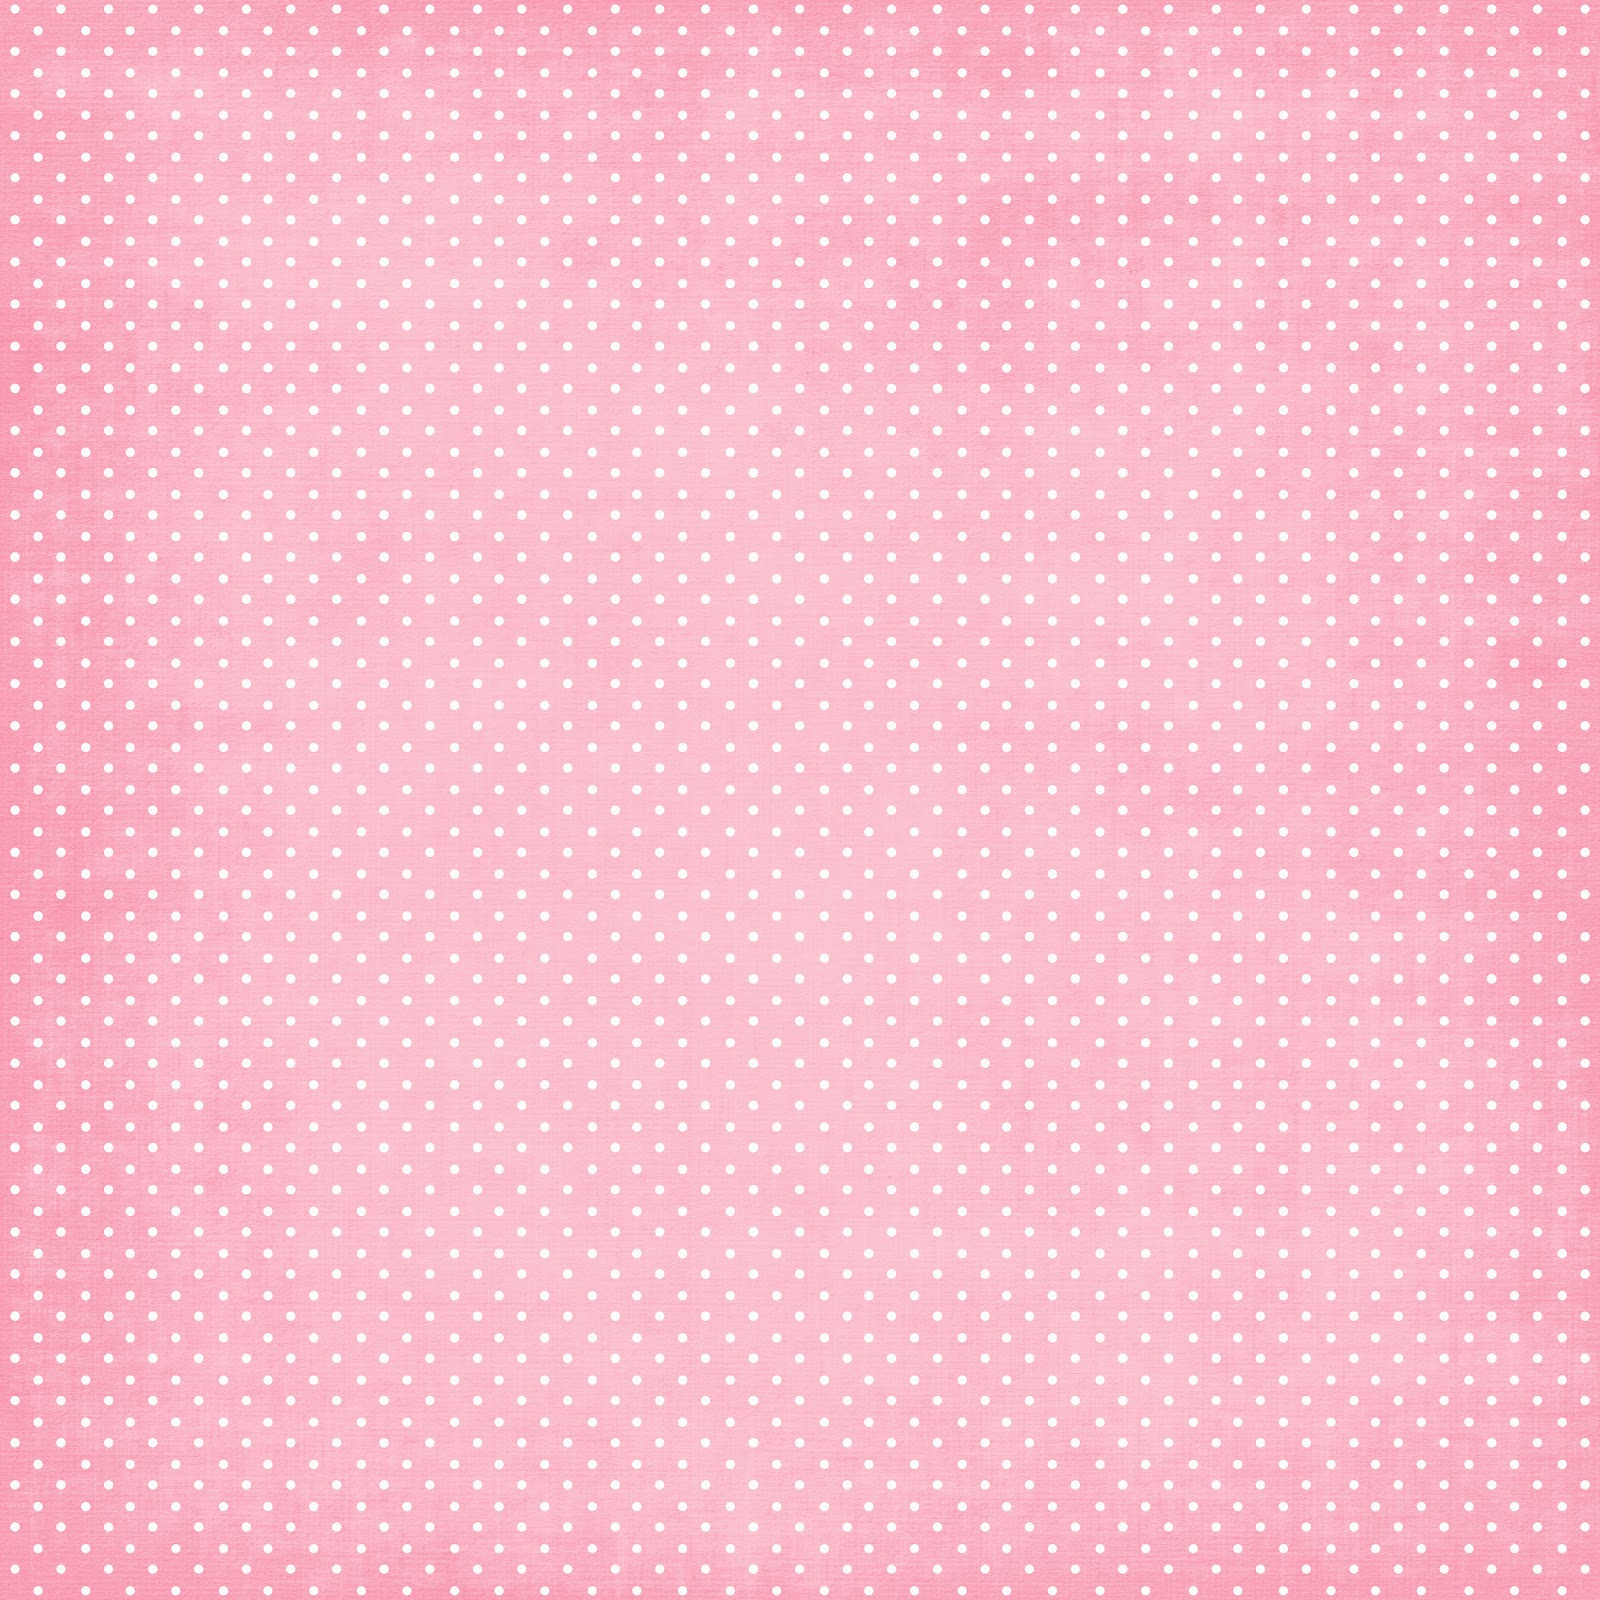 pink polka dot paper 12ct small light pink polka dot biodegradable, food safe ink & paper, premium quality paper (sturdy & thicker), kraft bag with colored sturdy handle (small, plight pink.